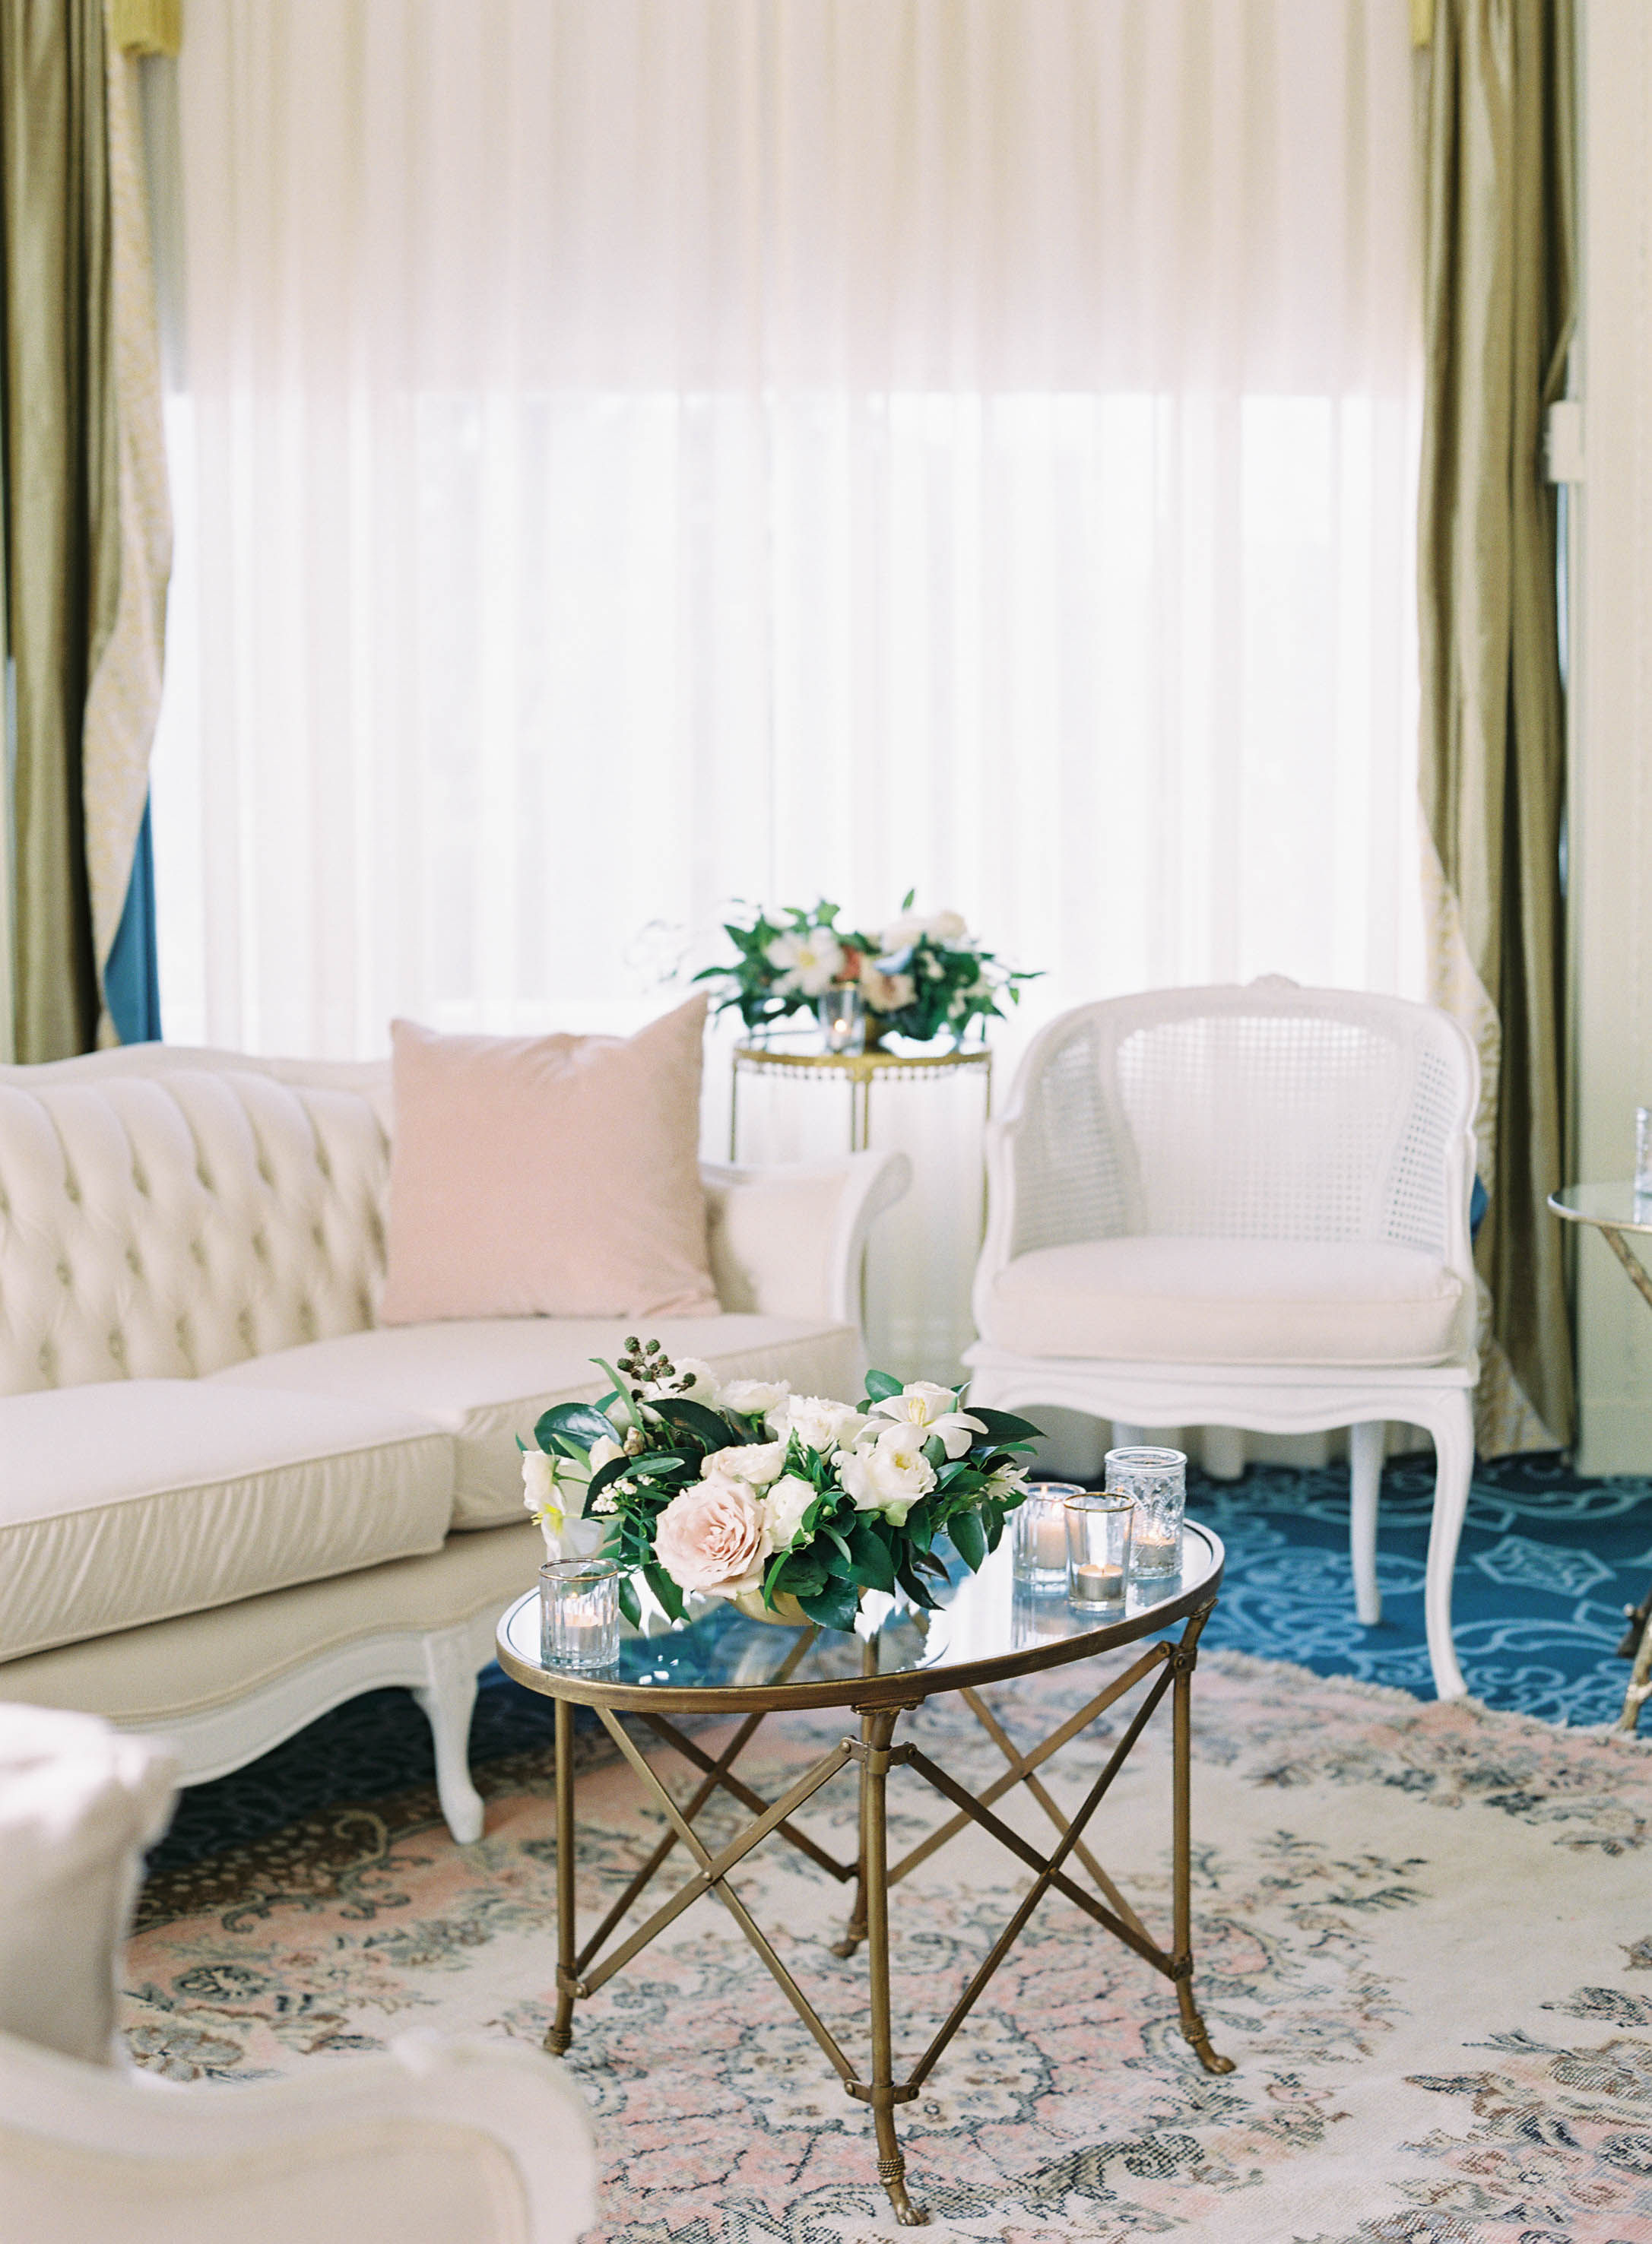 Baltimore, Darling and Daughters Florals, Washington DC, Charlottesville, Richmond, Events, Monthly, Flower Subscriptions, Jefferson Hotels026.JPG